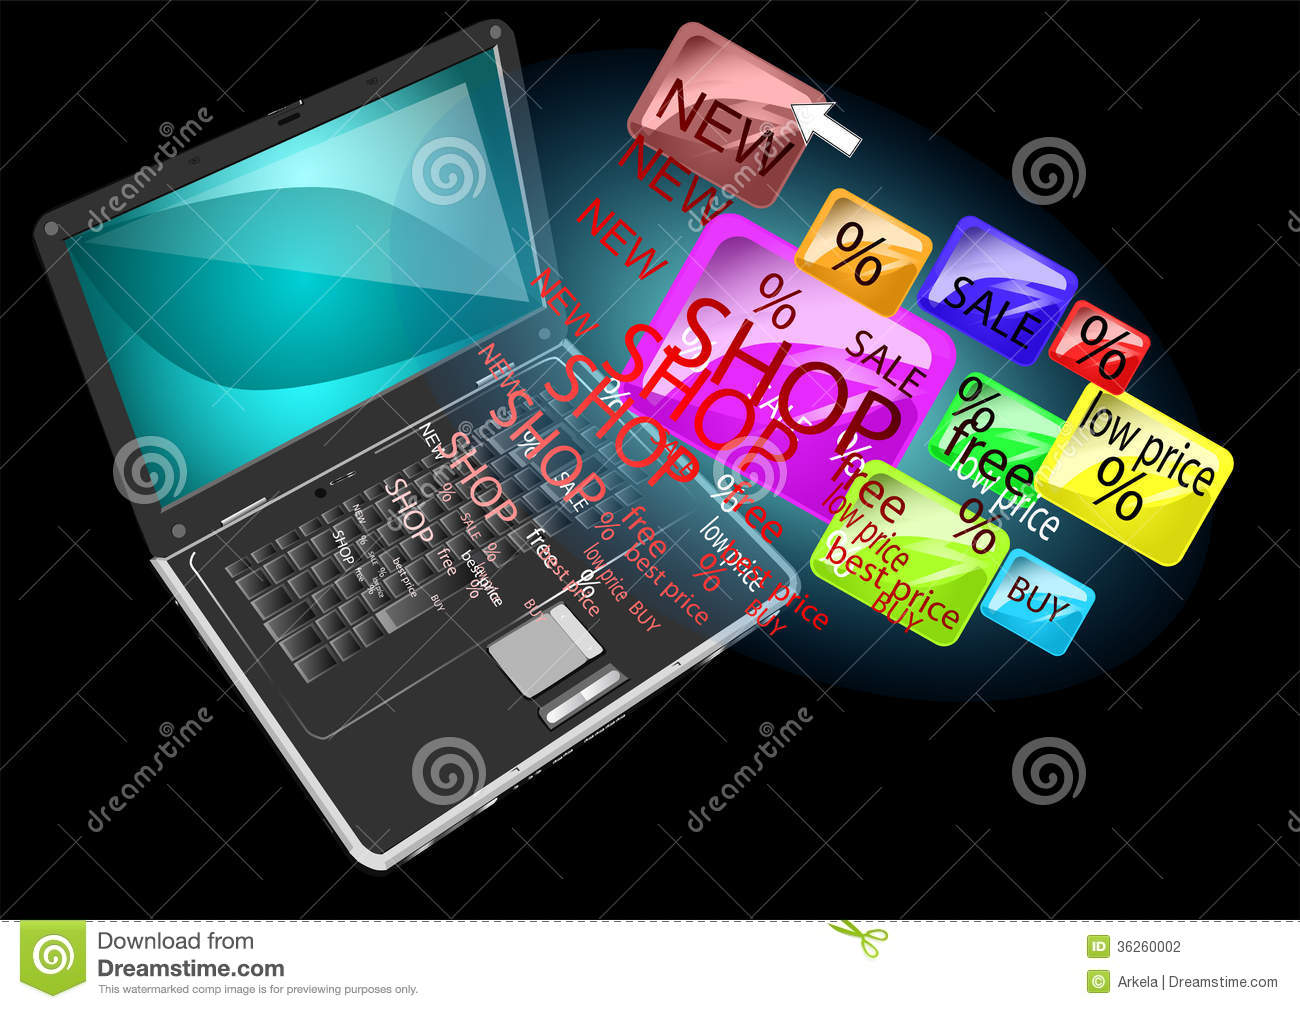 online-shopping-abstract-background-laptop-eps-36260002.jpg